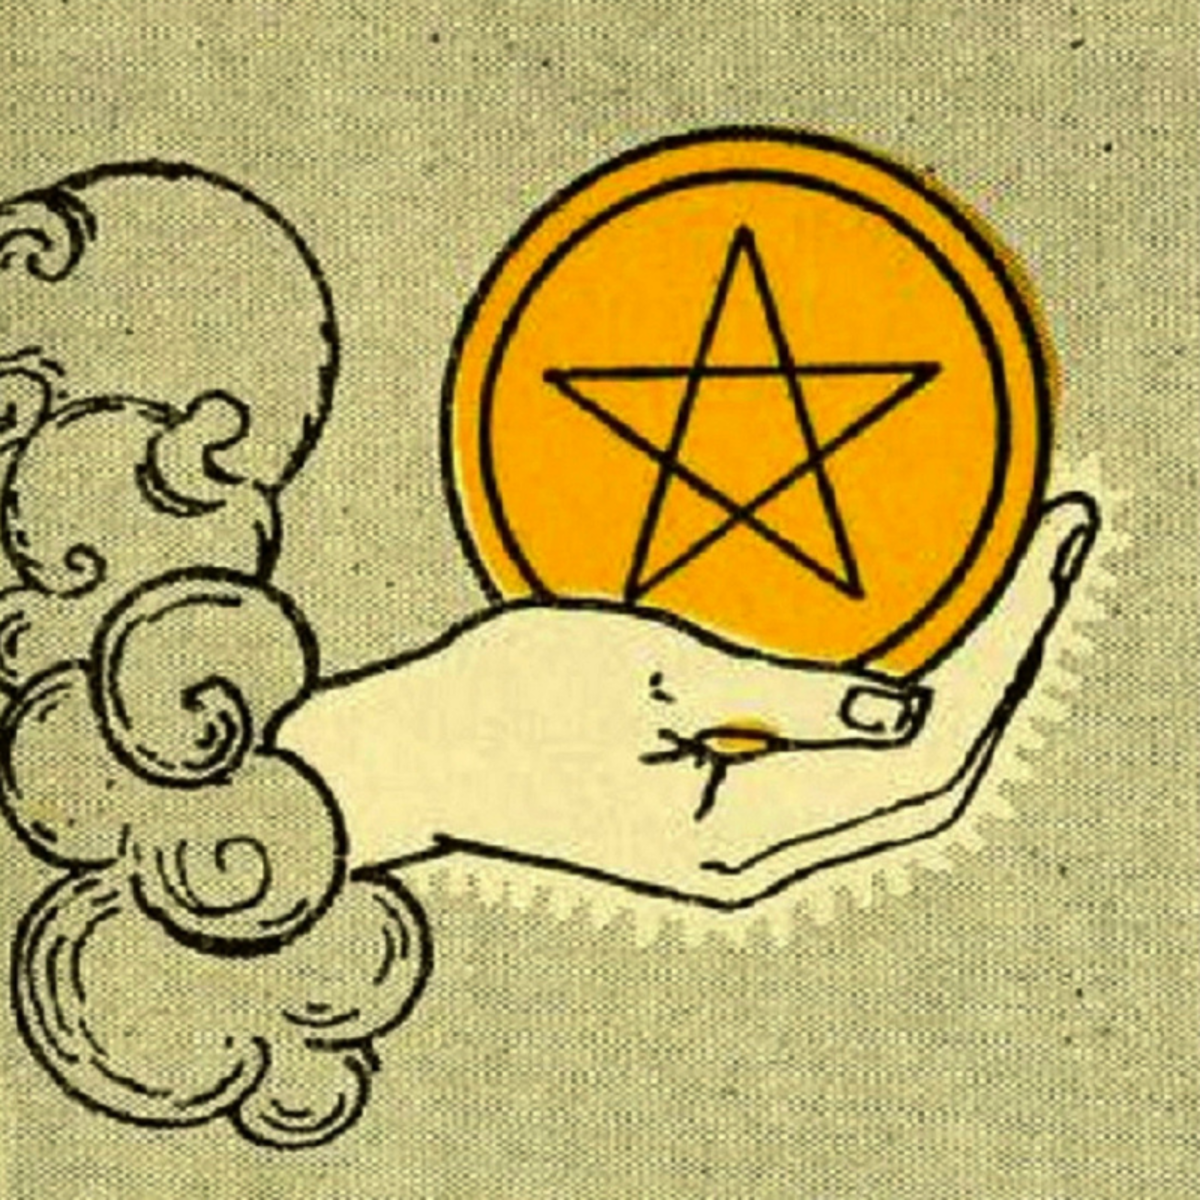 The pentacles depicted in the Rider-Waite tarot deck depict pentagrams, or five-pointed stars.